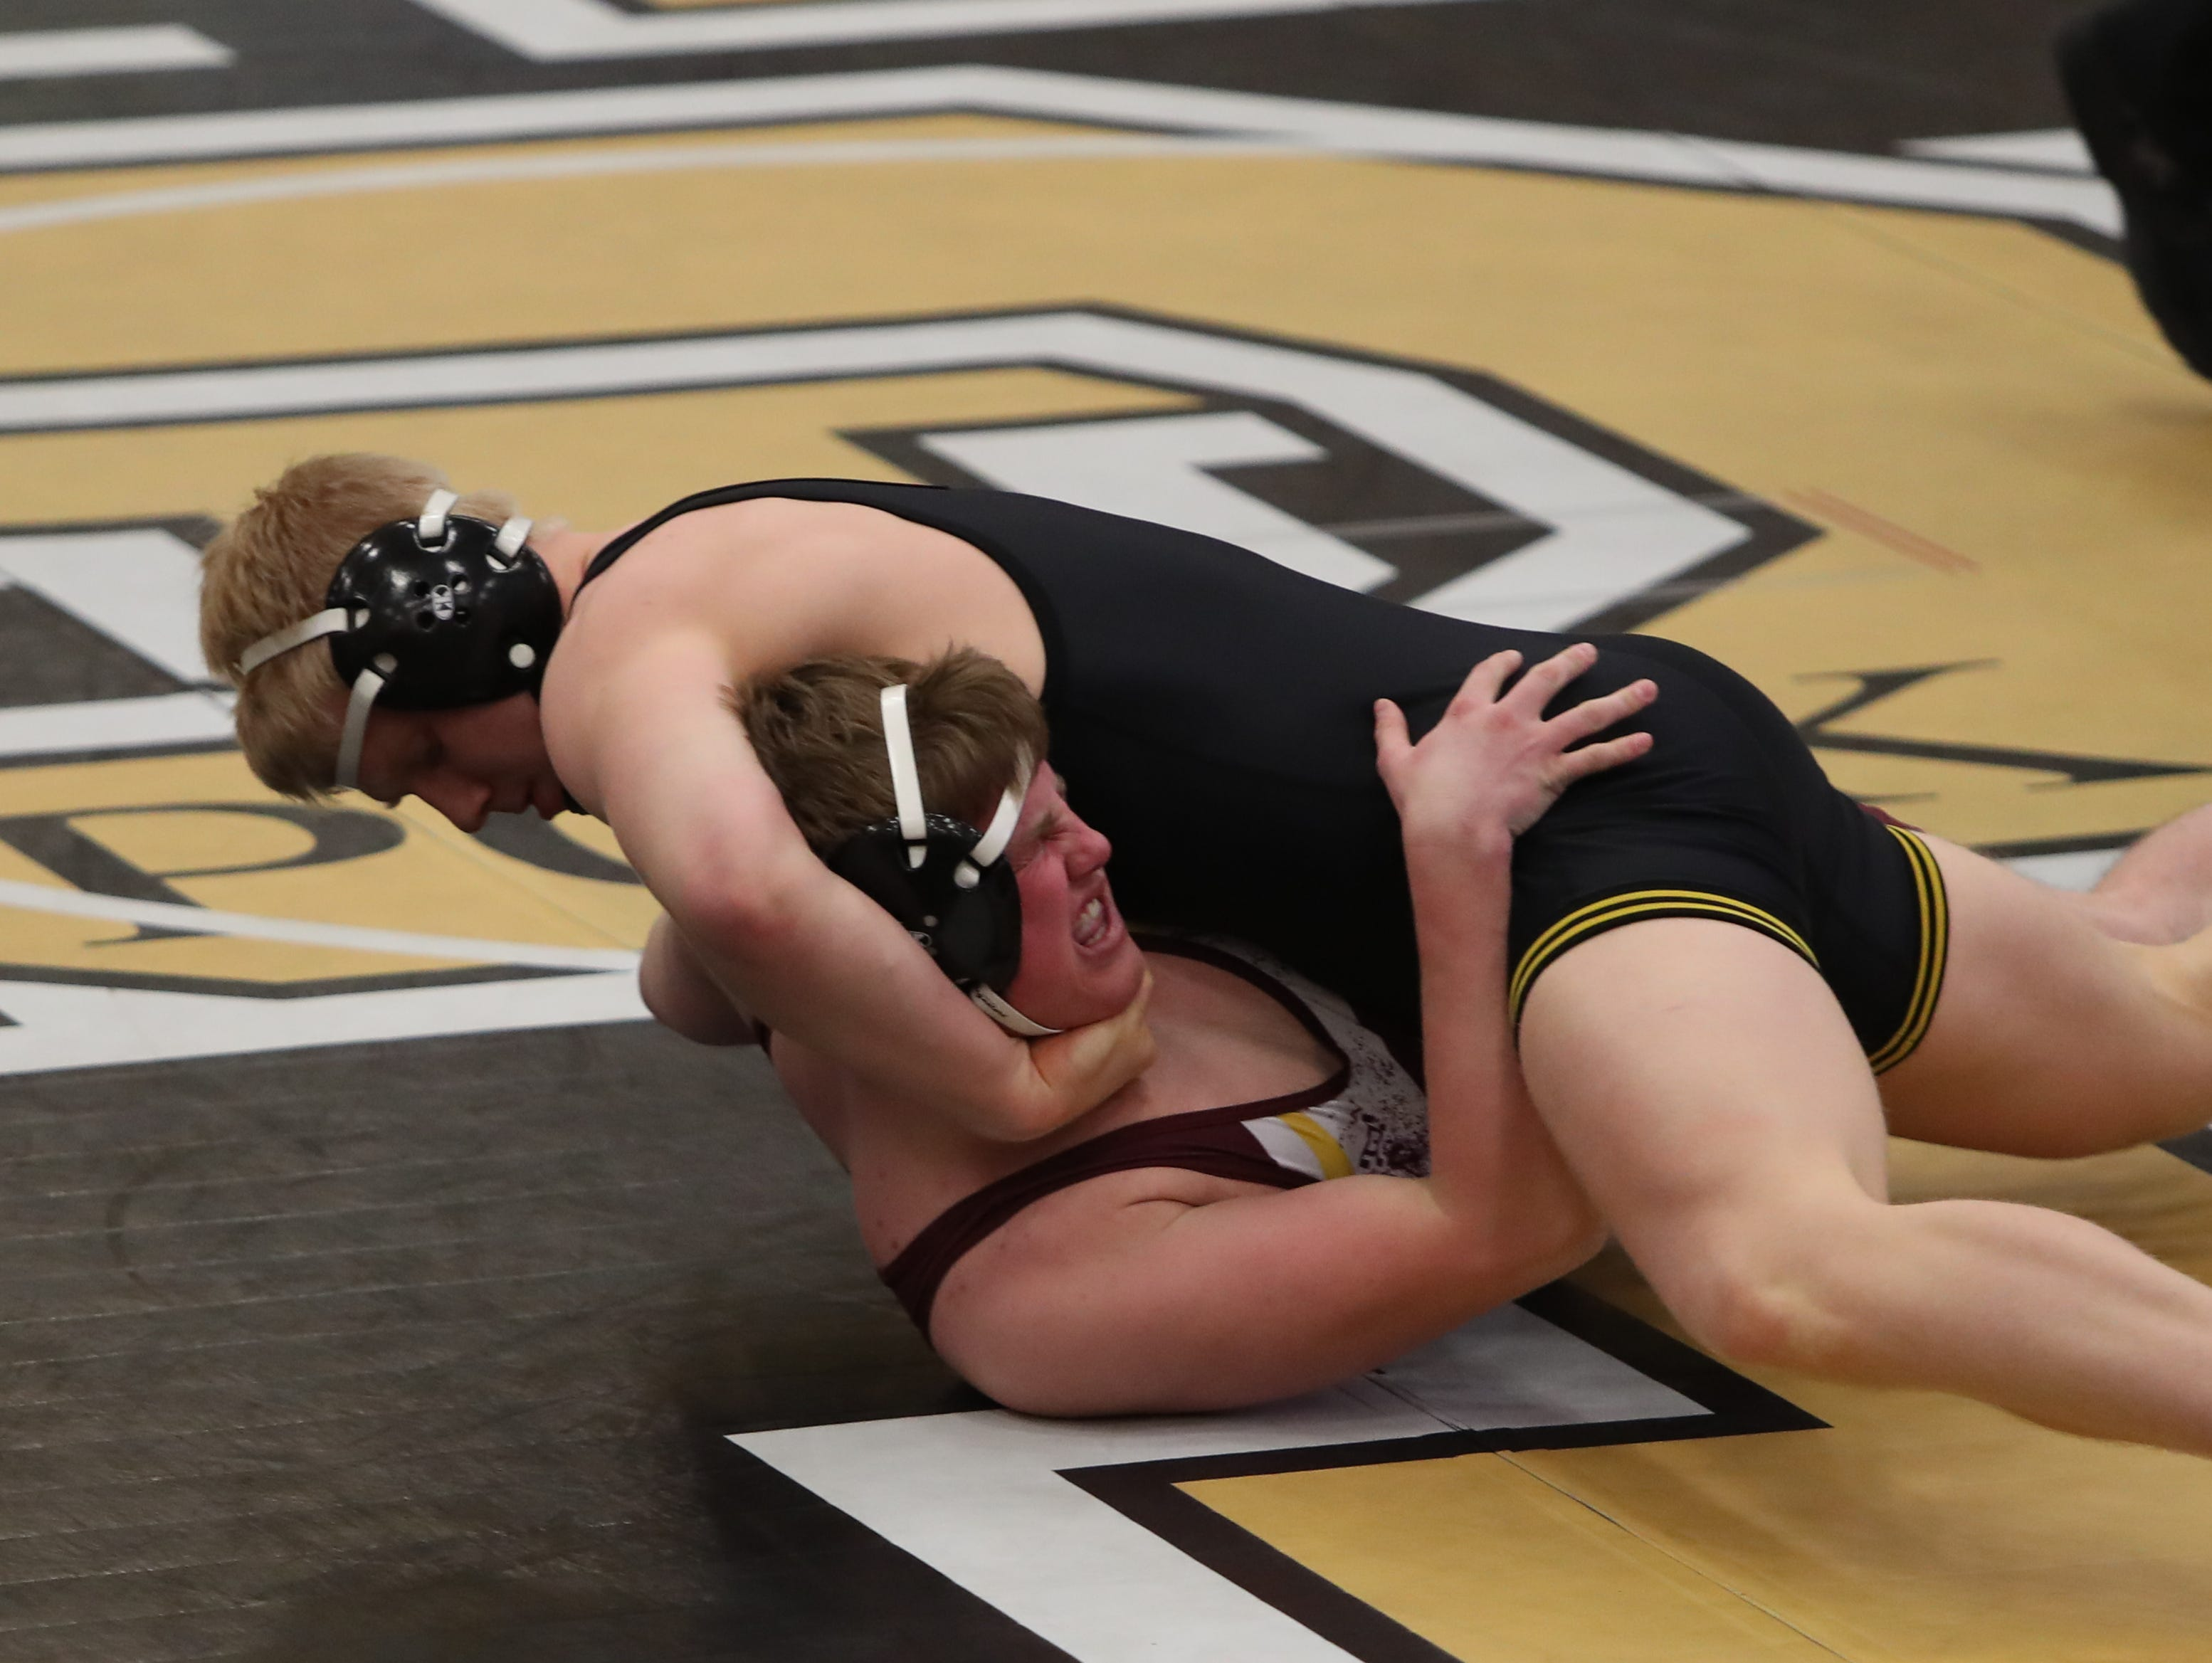 Southeast Polk's Gabe Christenson pins Ankeny's Cole Rathjen in 47 seconds at 195 pounds. Southeast Polk defeated Ankeny 57-17 in a Class 3A regional dual Feb. 6 at Southeast Polk.